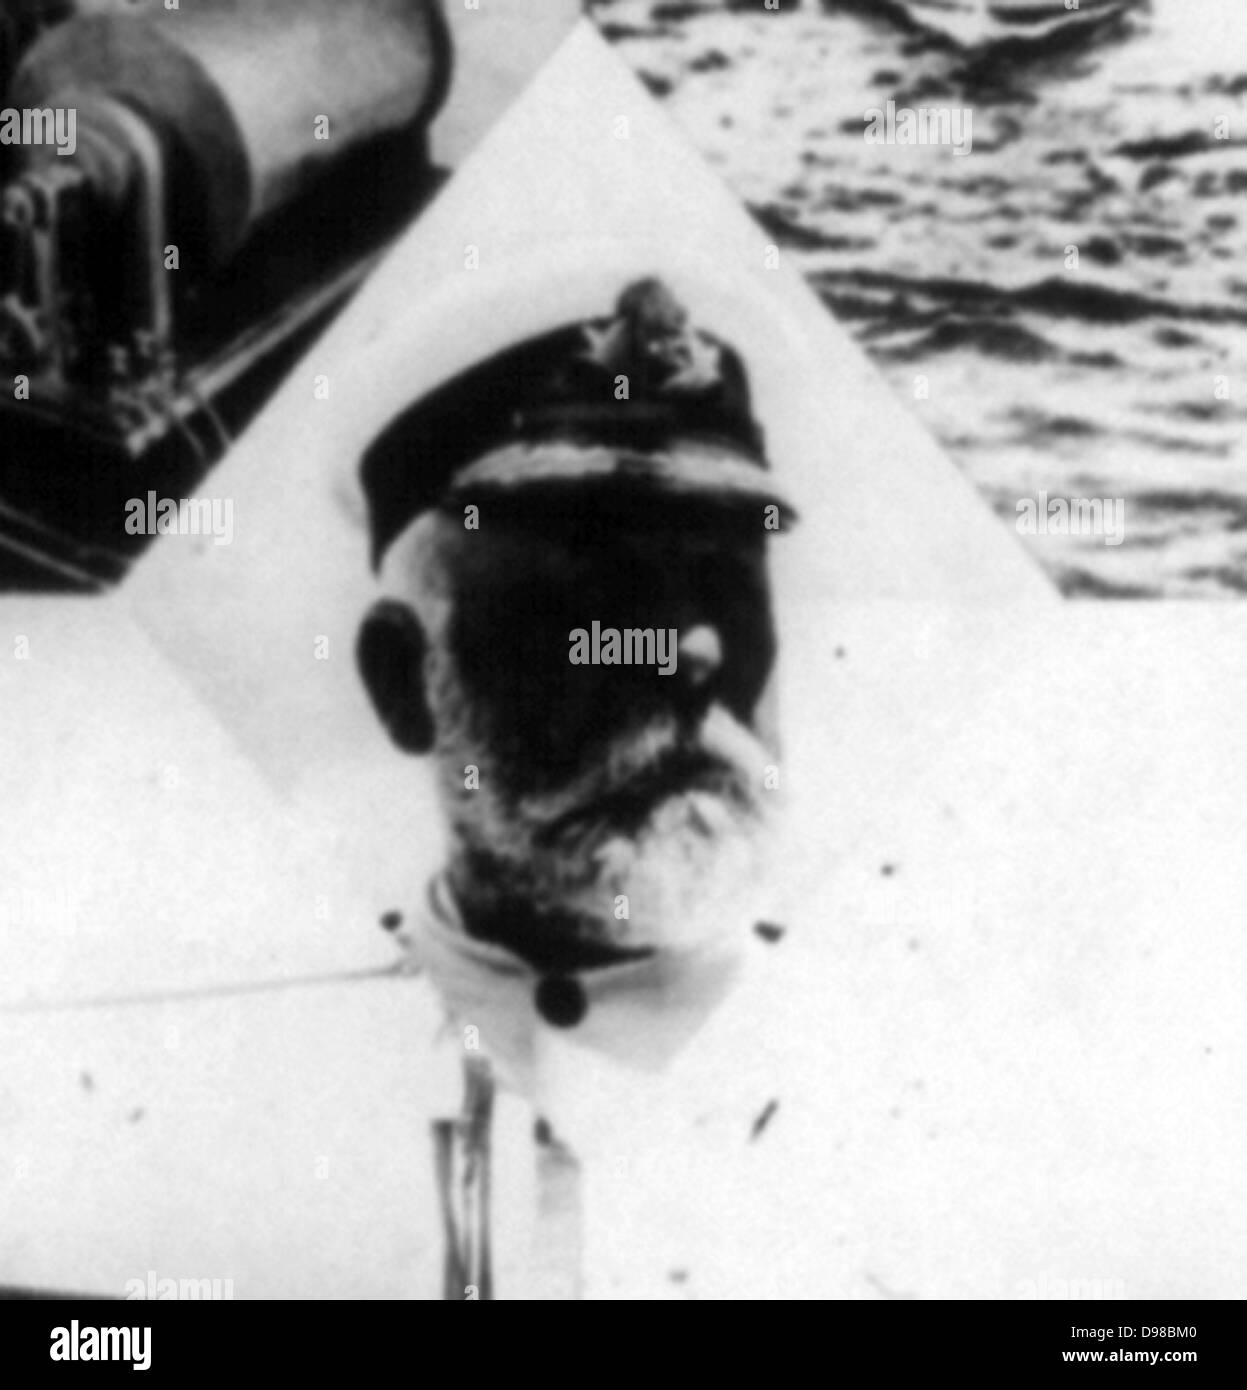 The great Titanic disaster -Captain Smith of the Titanic 1912 - Stock Image